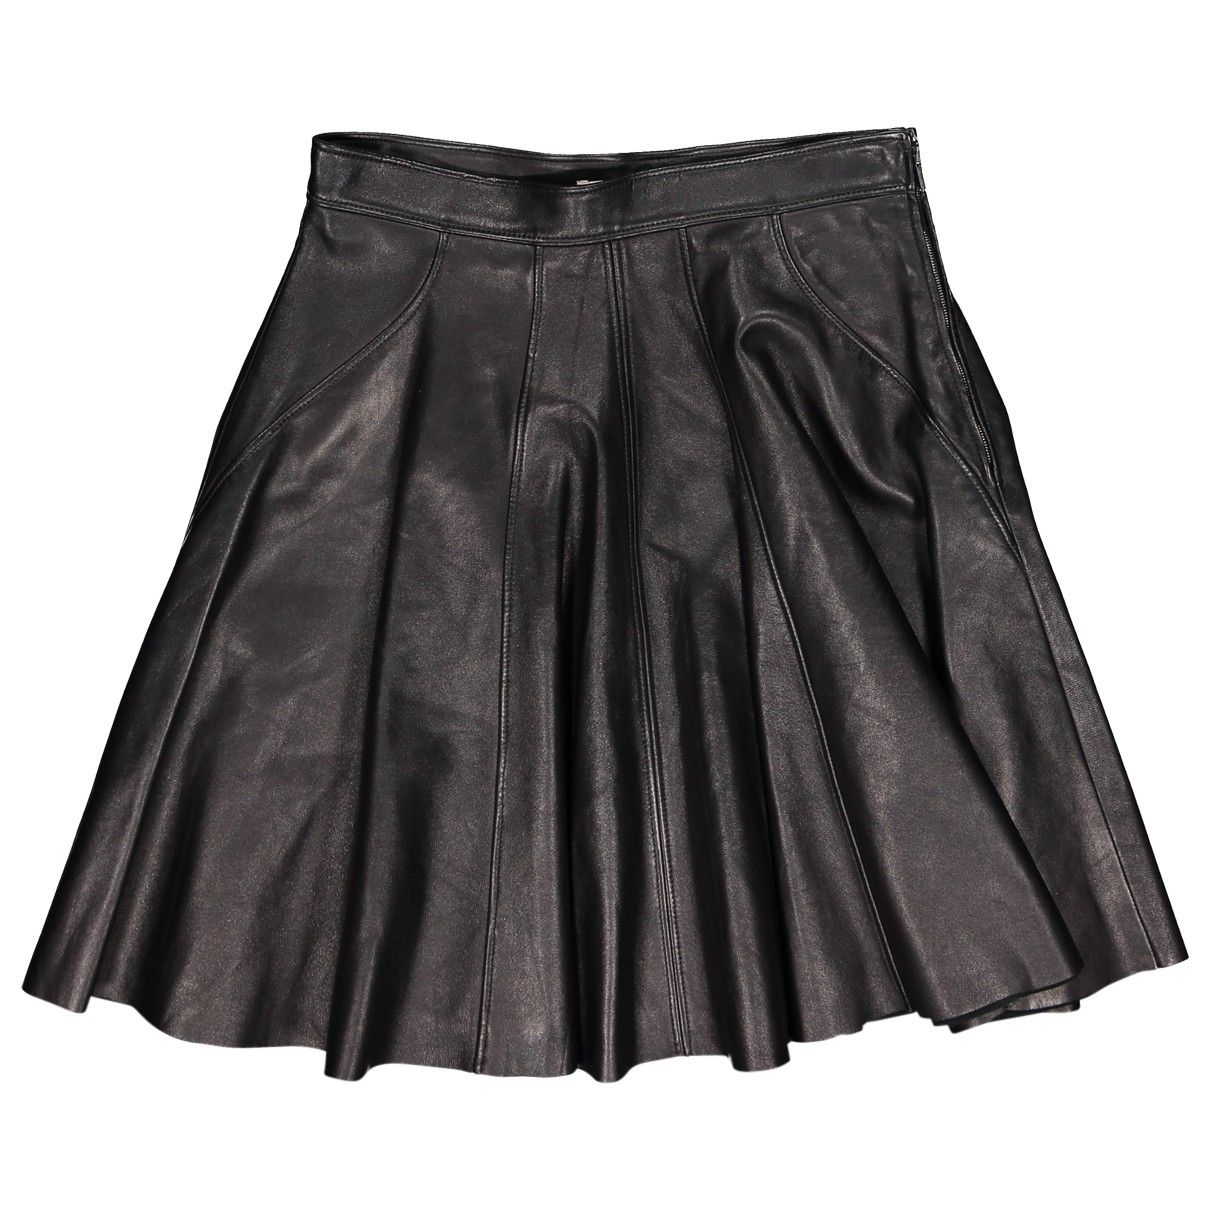 Miu Miu \N Black Leather skirt for Women 40 IT